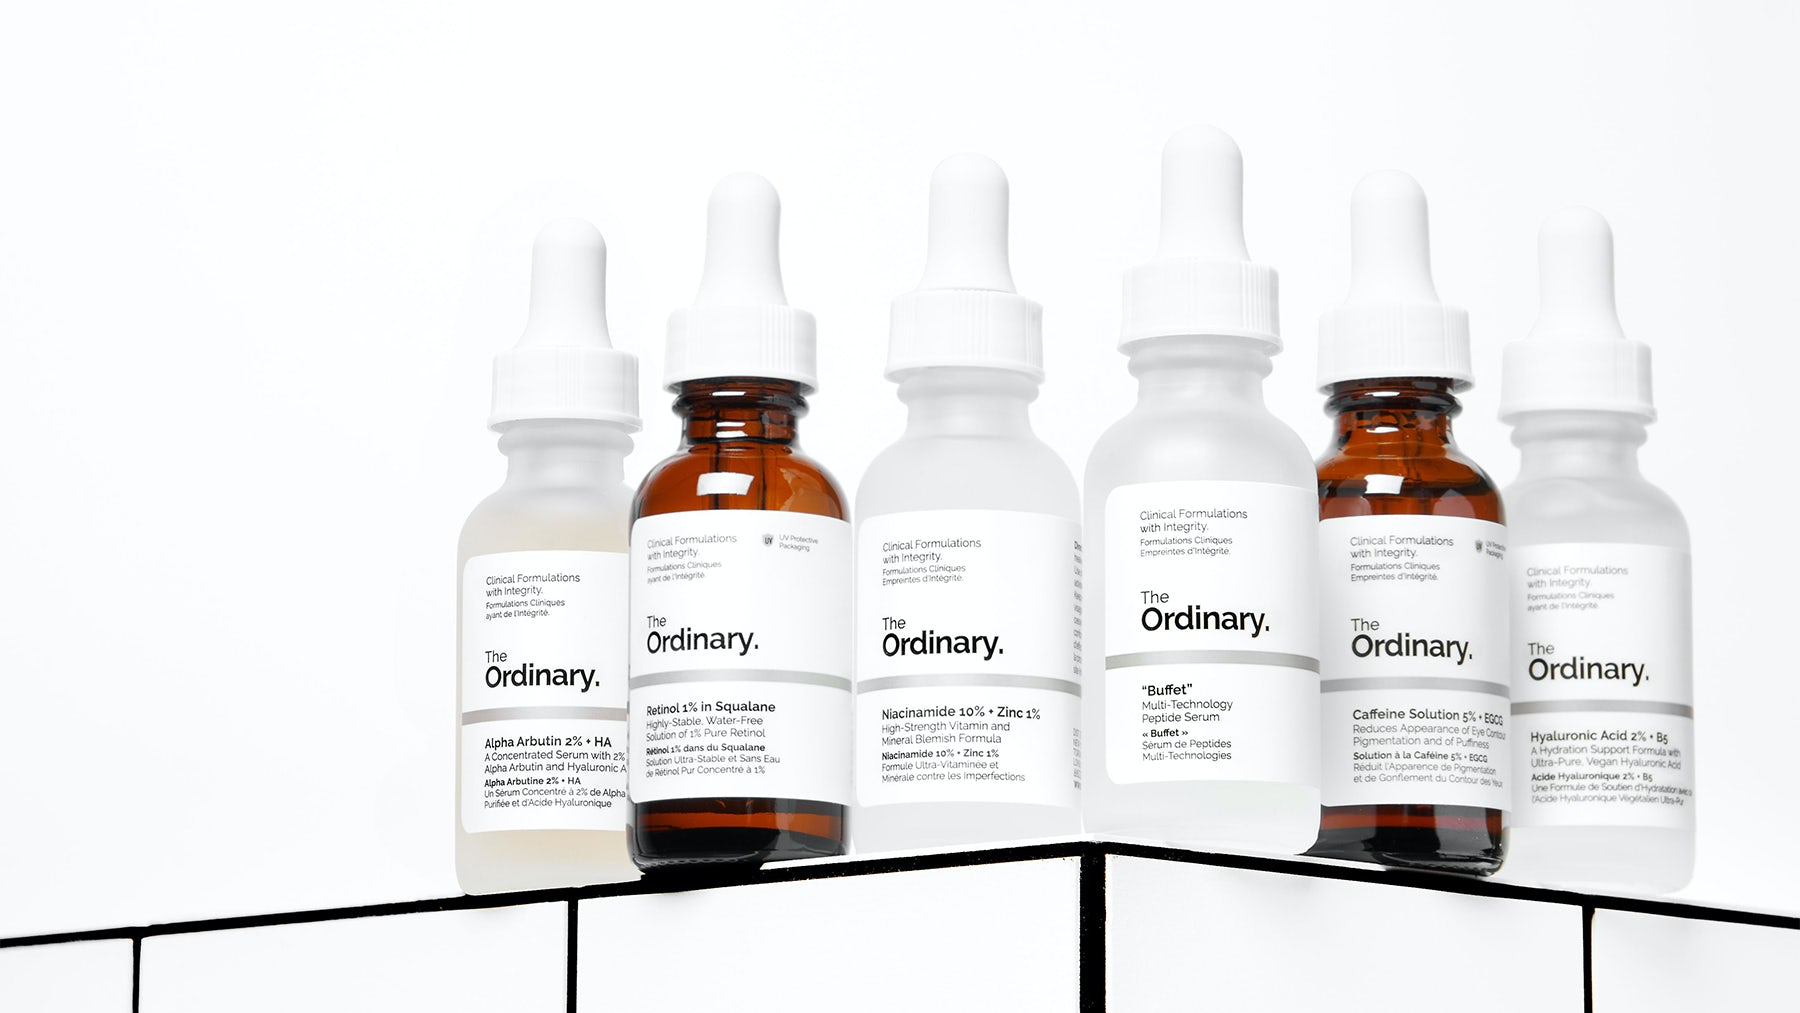 The Ordinary is expanding its brick-and-mortar offering with Sephora tie-up. Deciem.